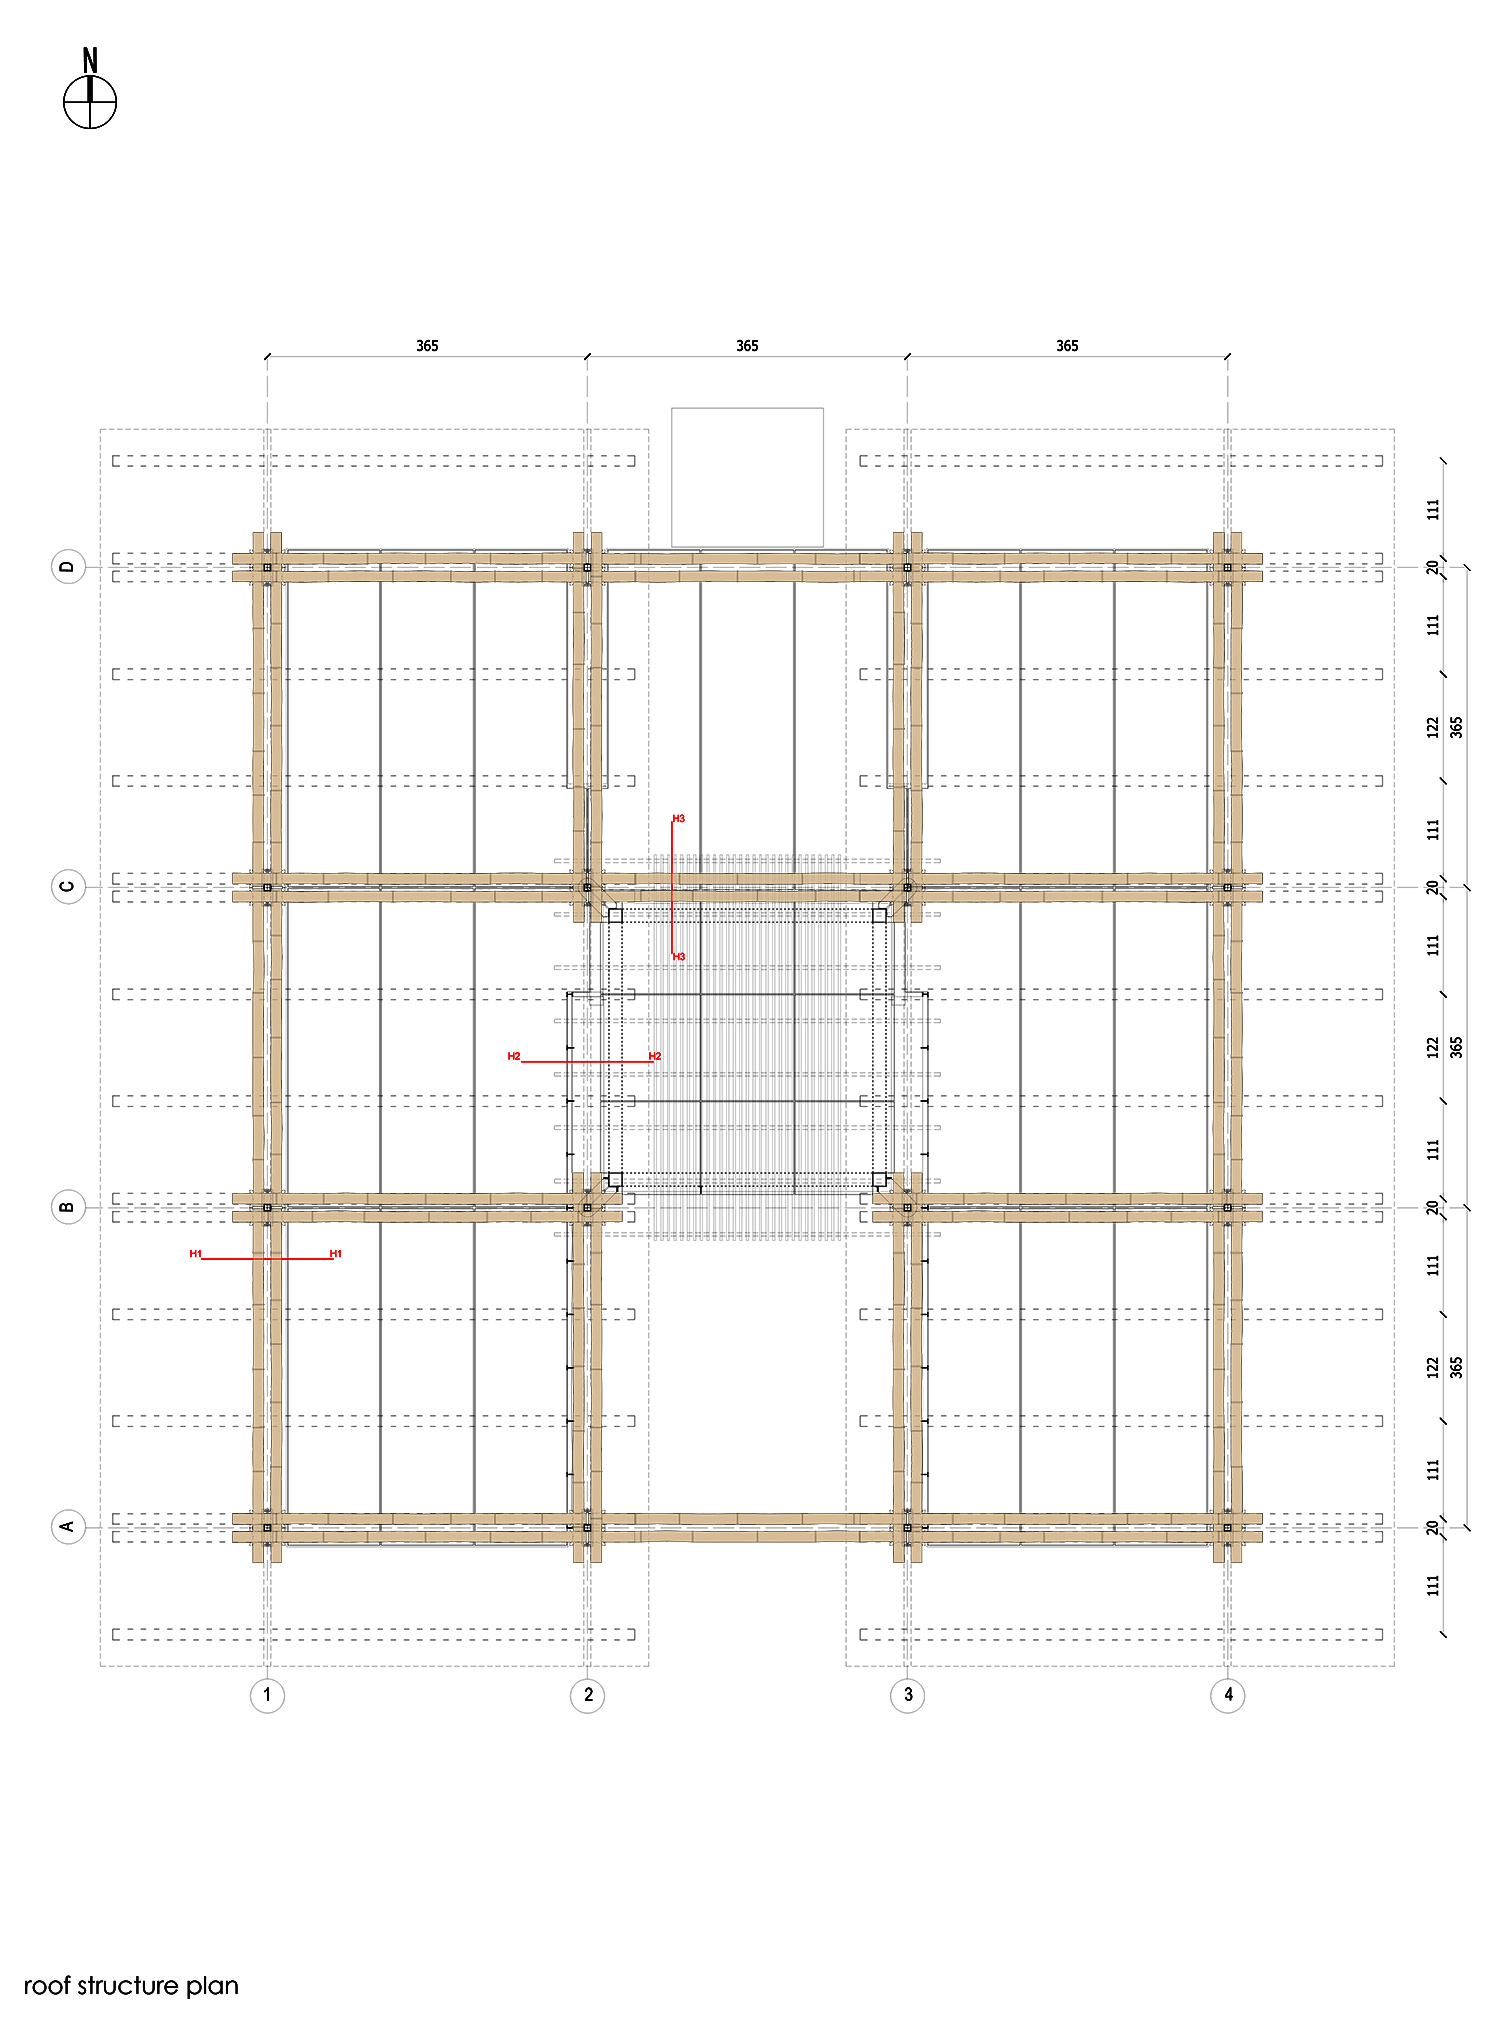 5. Roof structure plan }